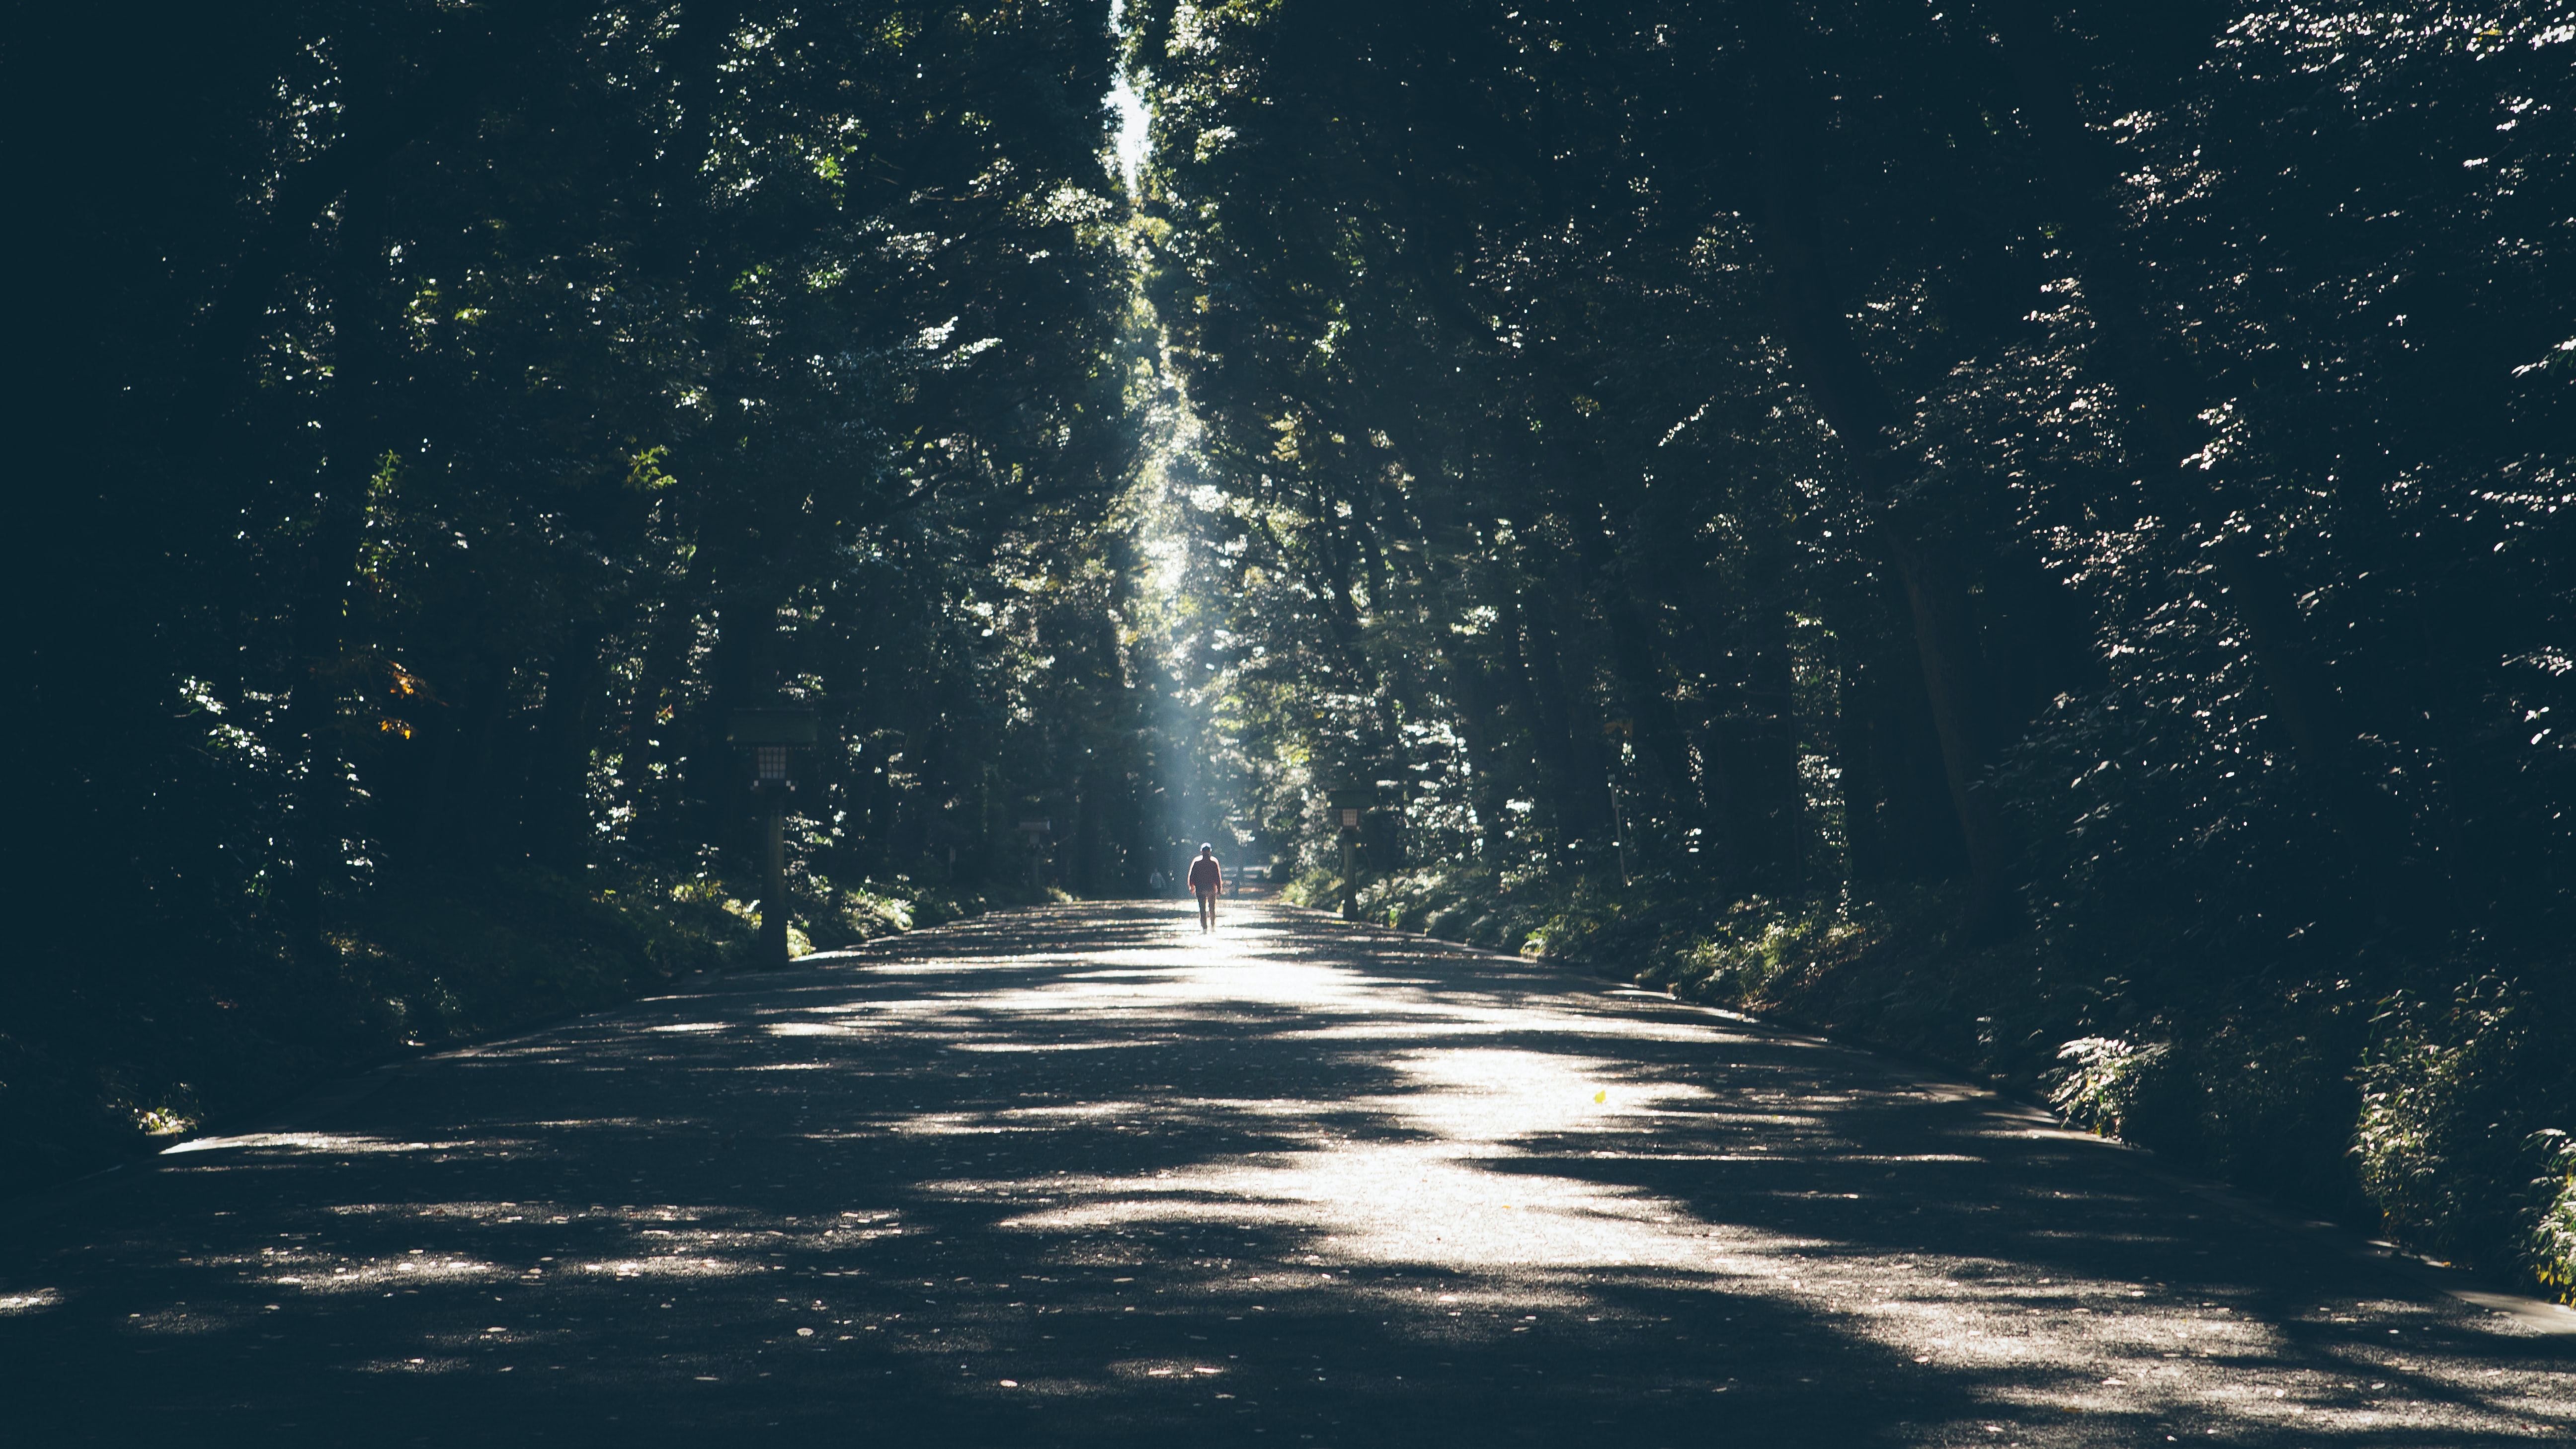 A silhouette of a person on a sunlit tree-lined road